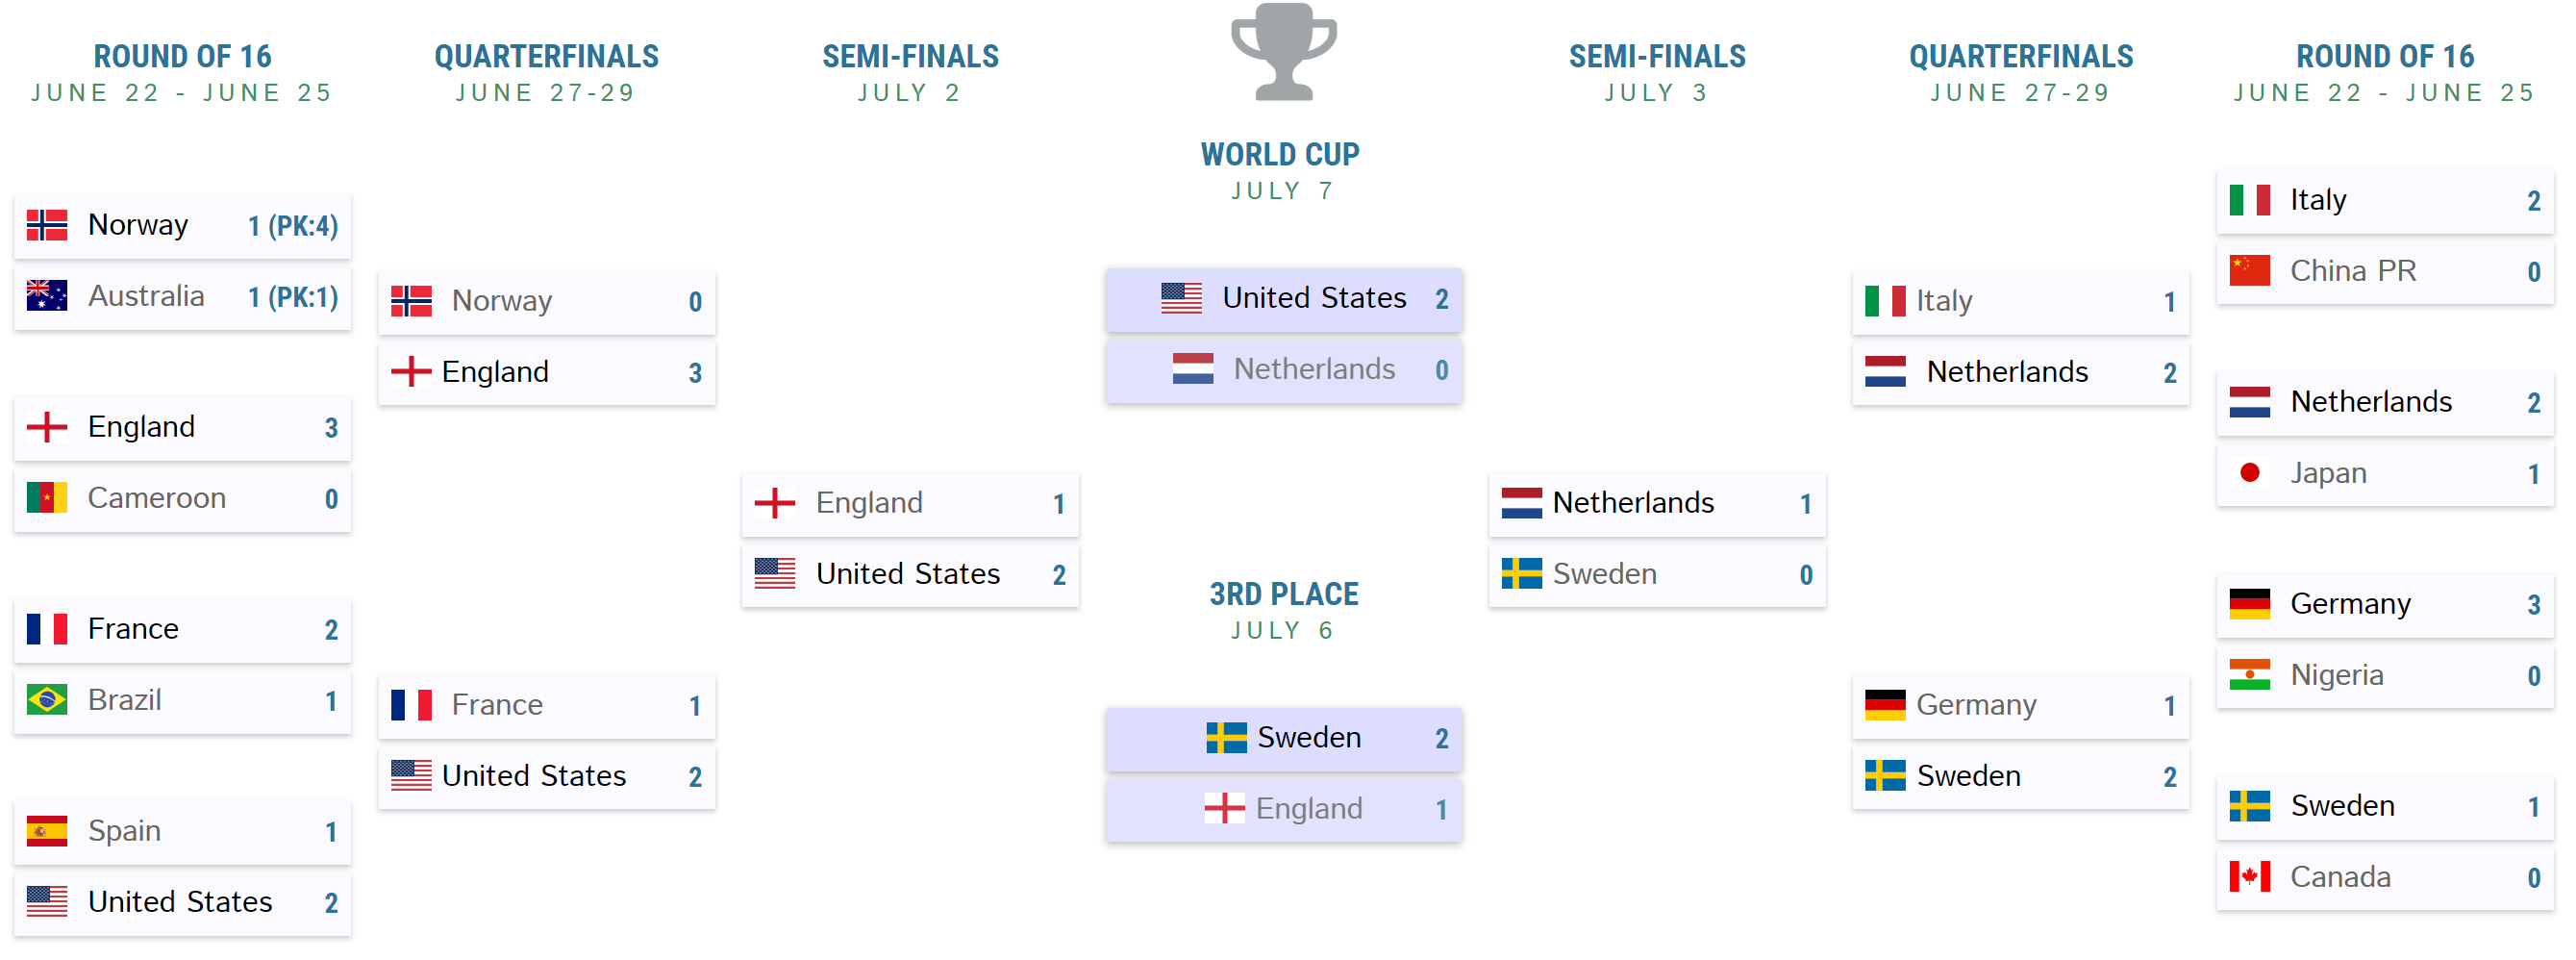 womens-world-cup-final-bracket.png